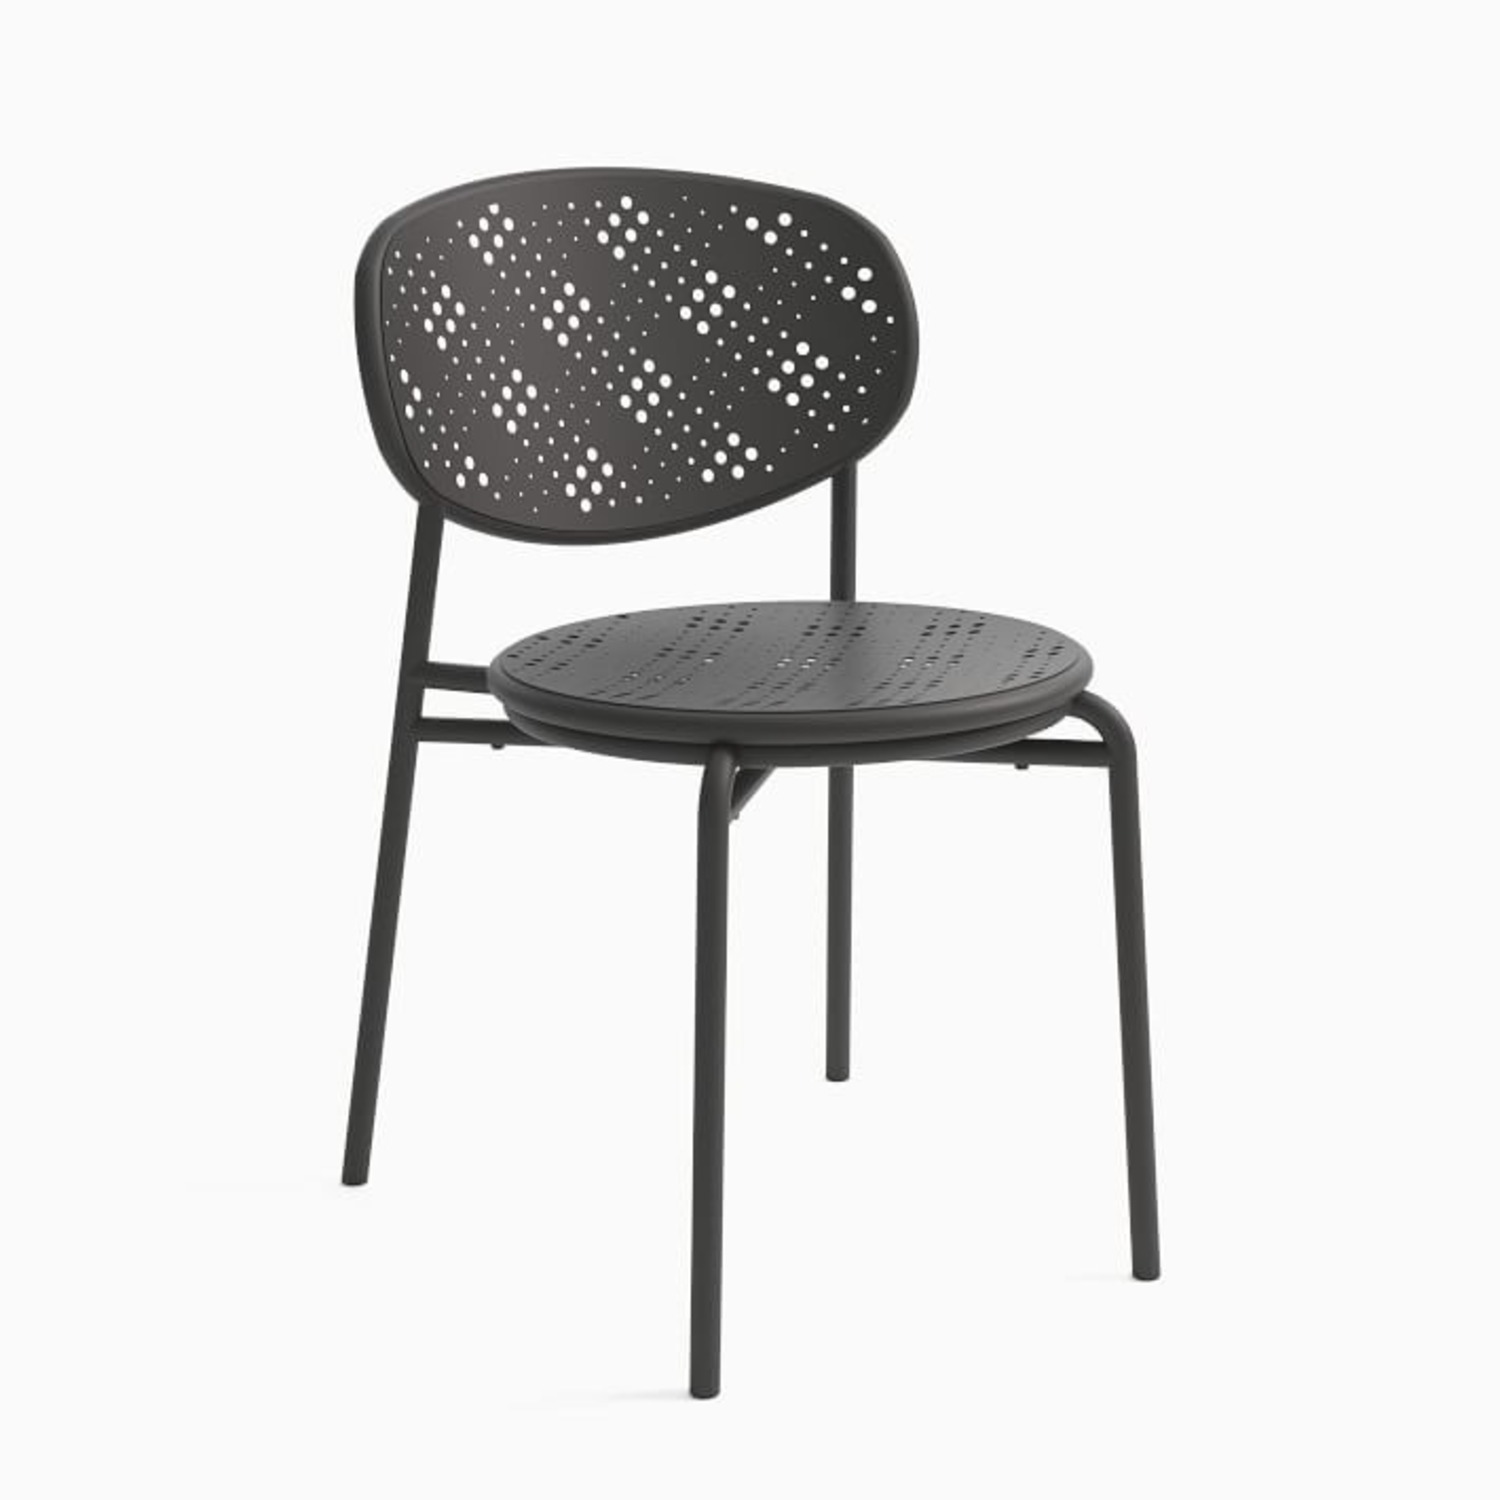 West Elm Cagney Outdoor Stacking Chair, Peppercorn - image-3